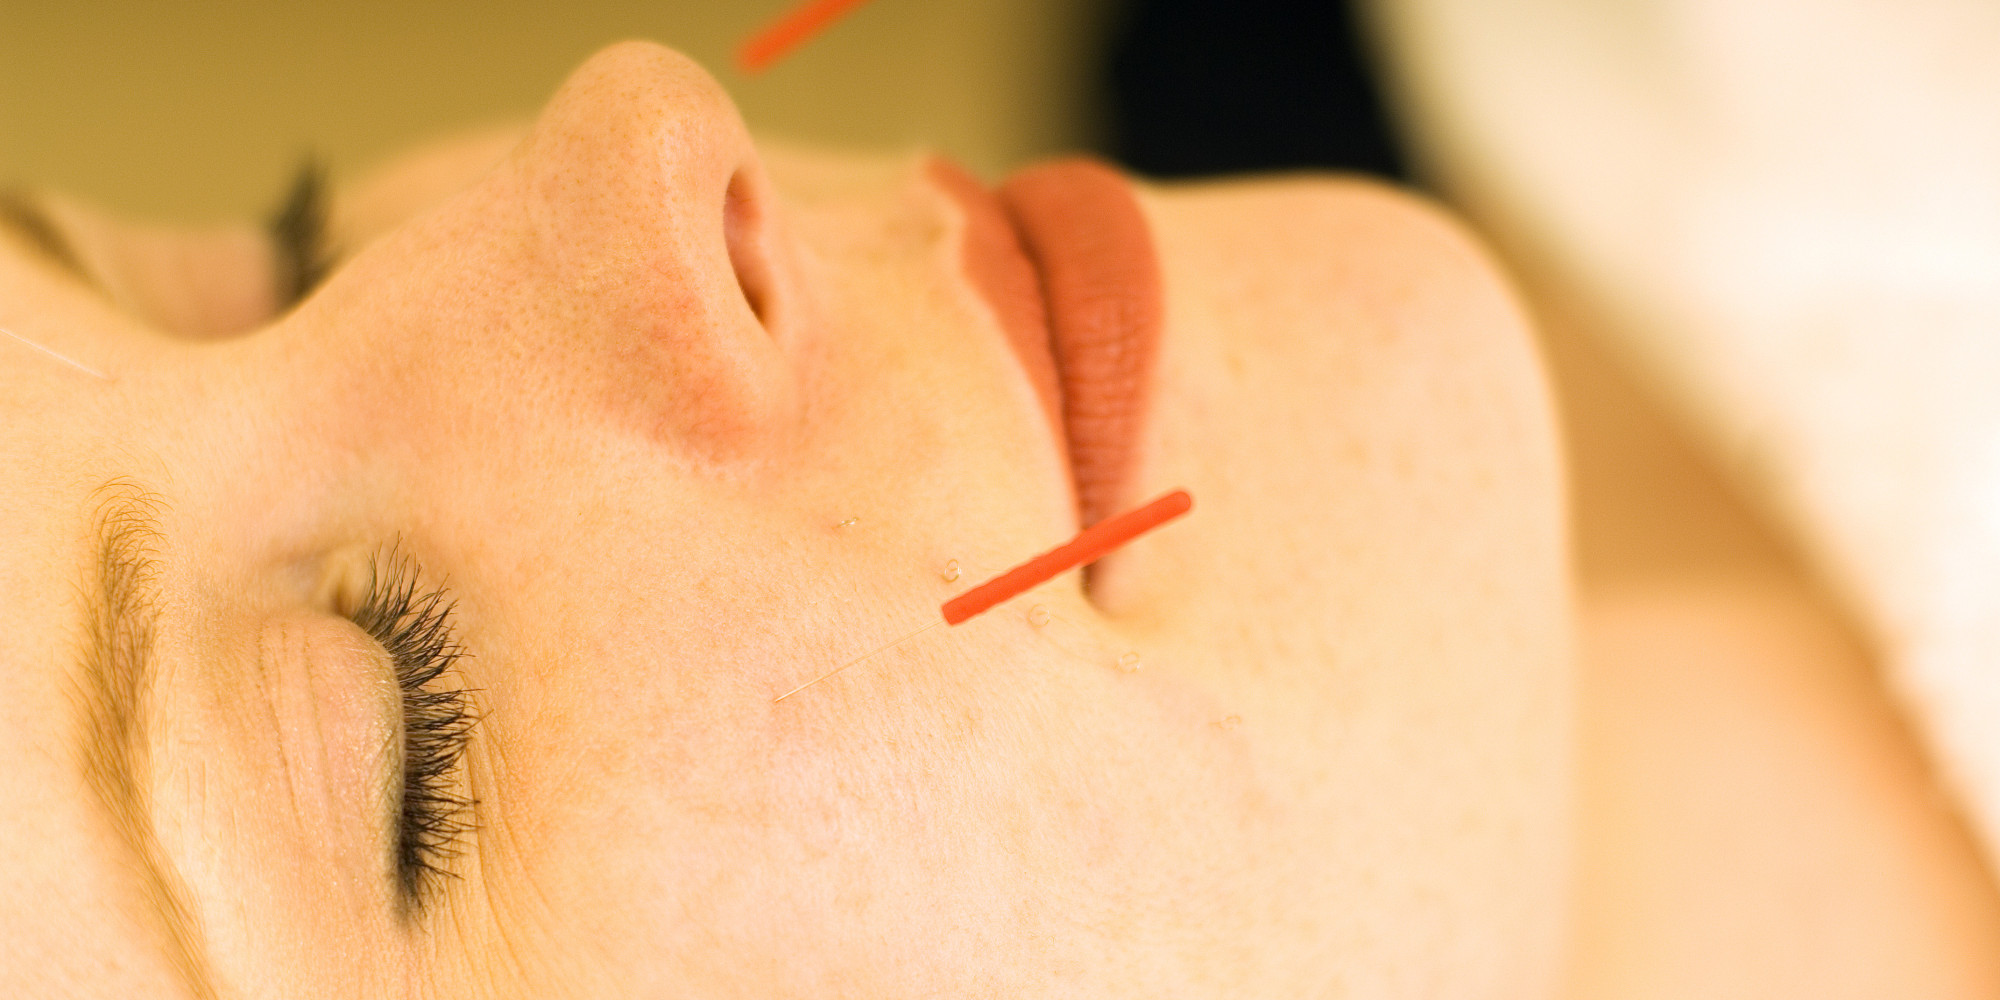 Tried Tested: Facial Acupuncture